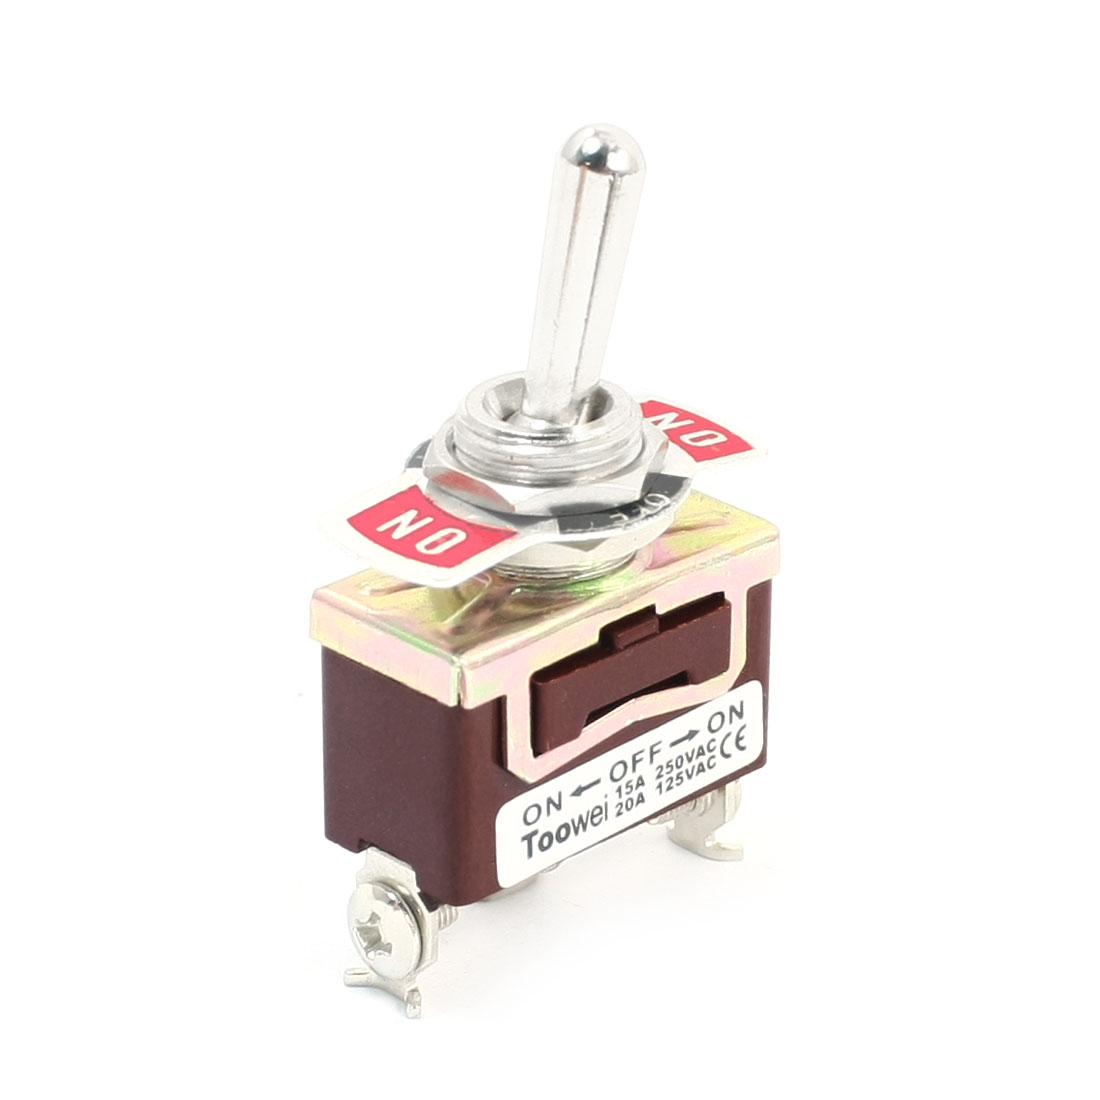 12mm Dia Panel Mounted SPDT ON-OFF-ON Locking Toggle Switch AC 250V 15A T701CW